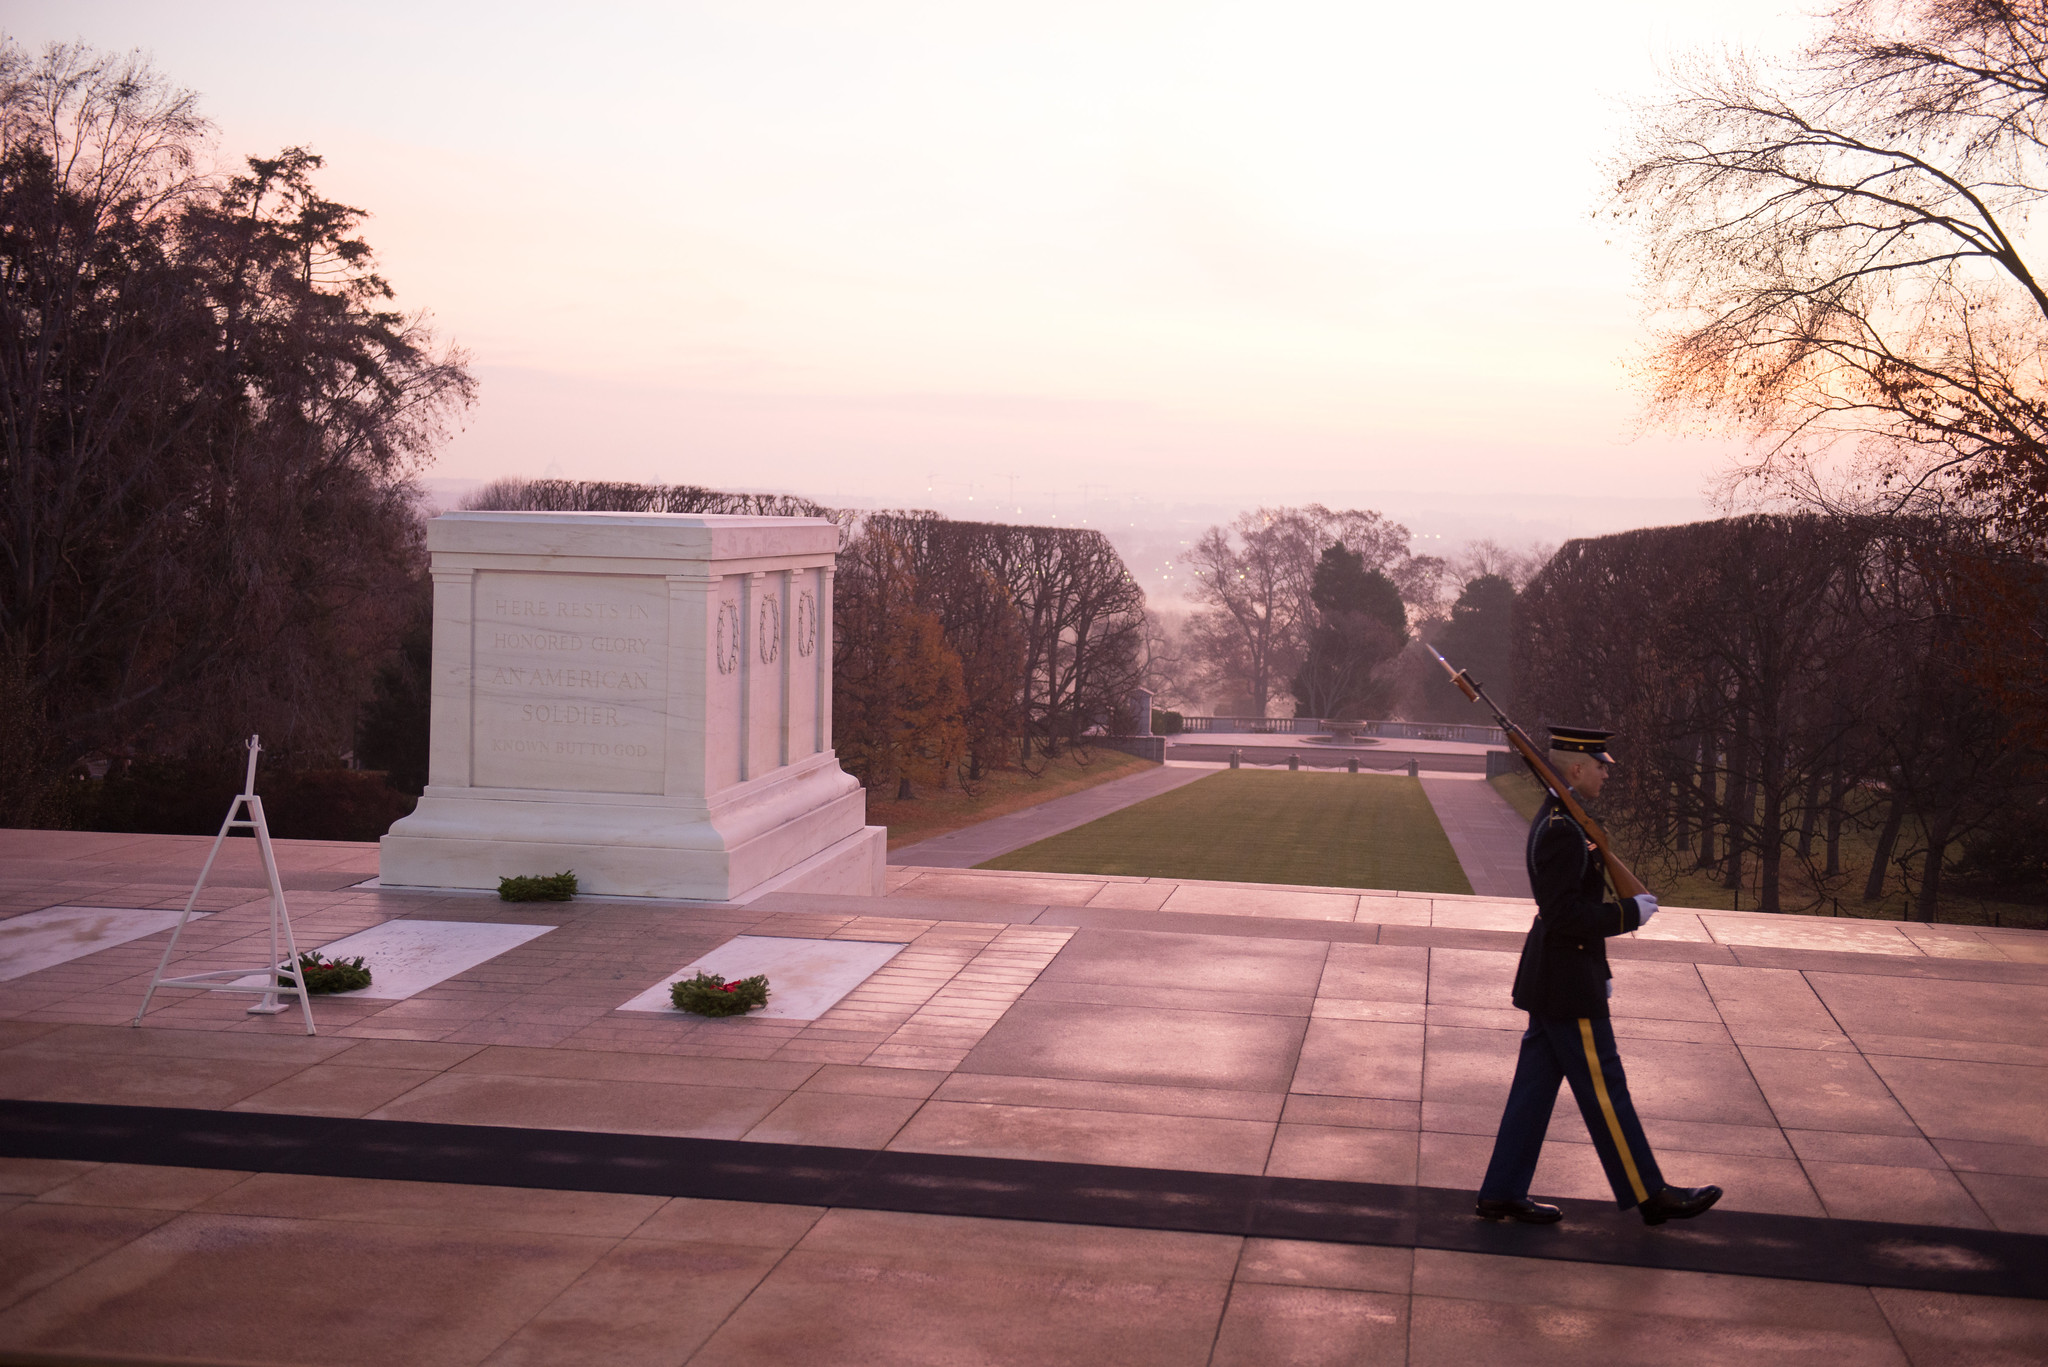 A sentinel of the U.S. Army Old Guard patrols the Tomb of the Unknown Soldier at dawn